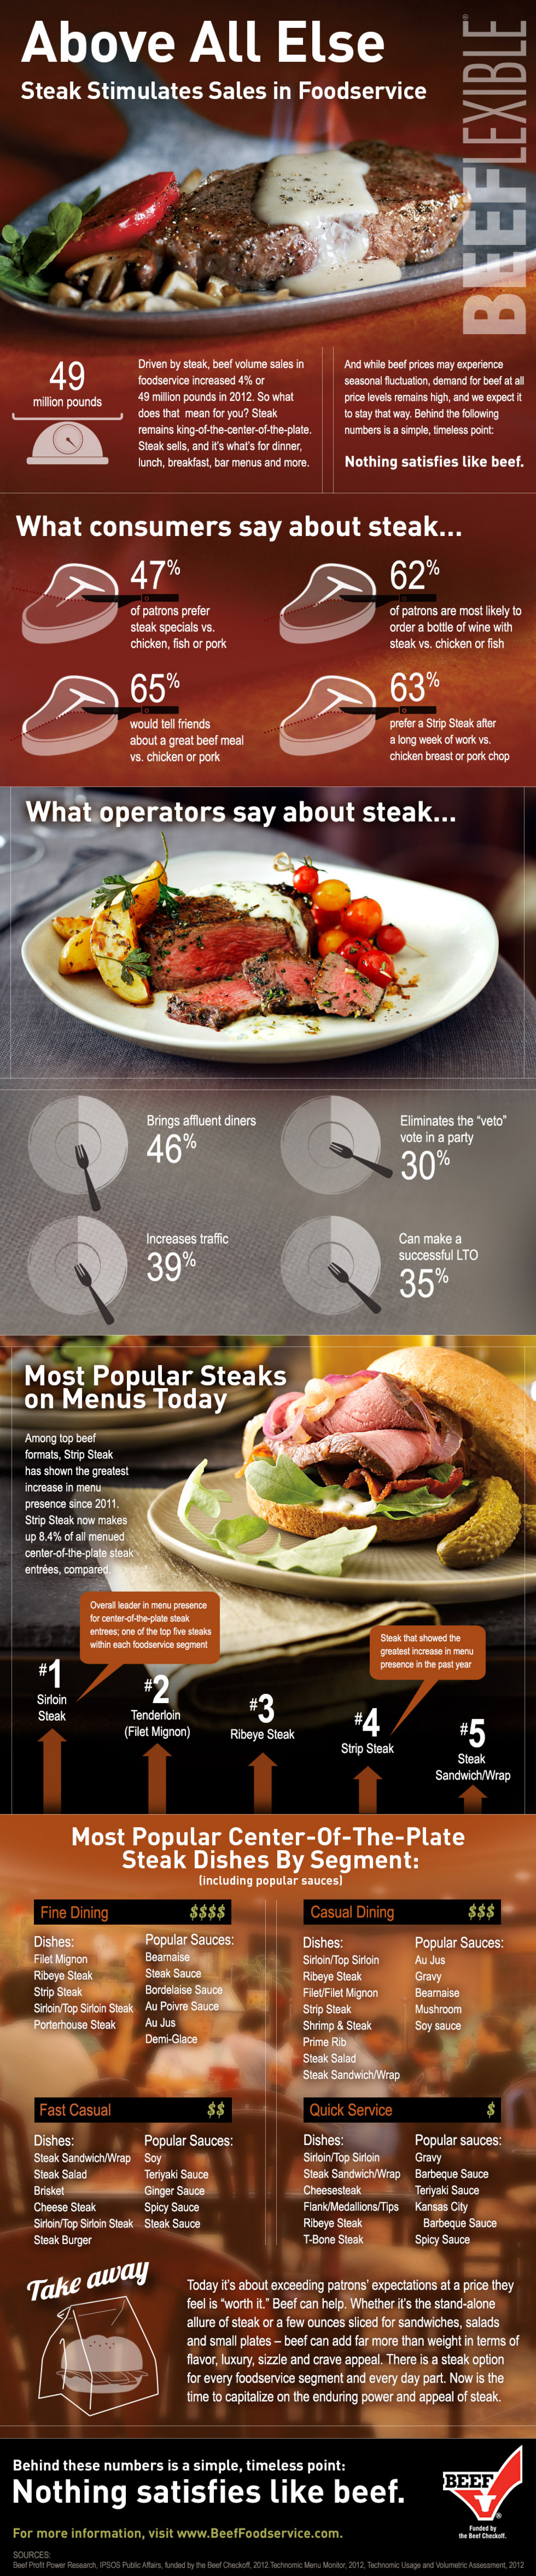 Steak in Foodservice Infographic